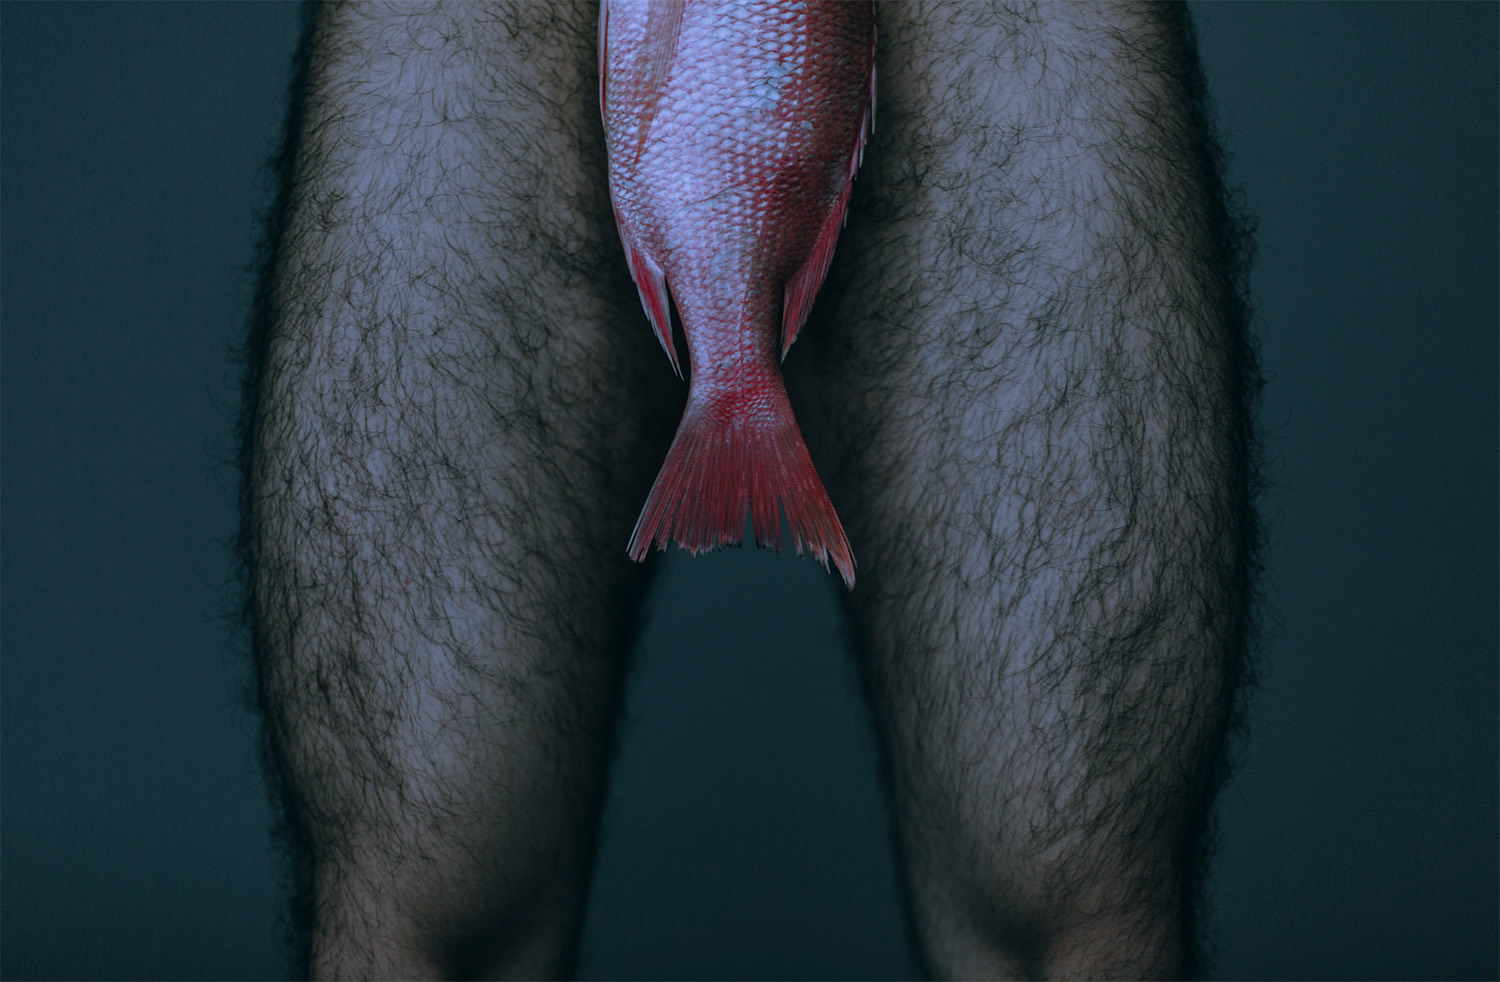 man with fish in front of body, photography by Daniel Molina